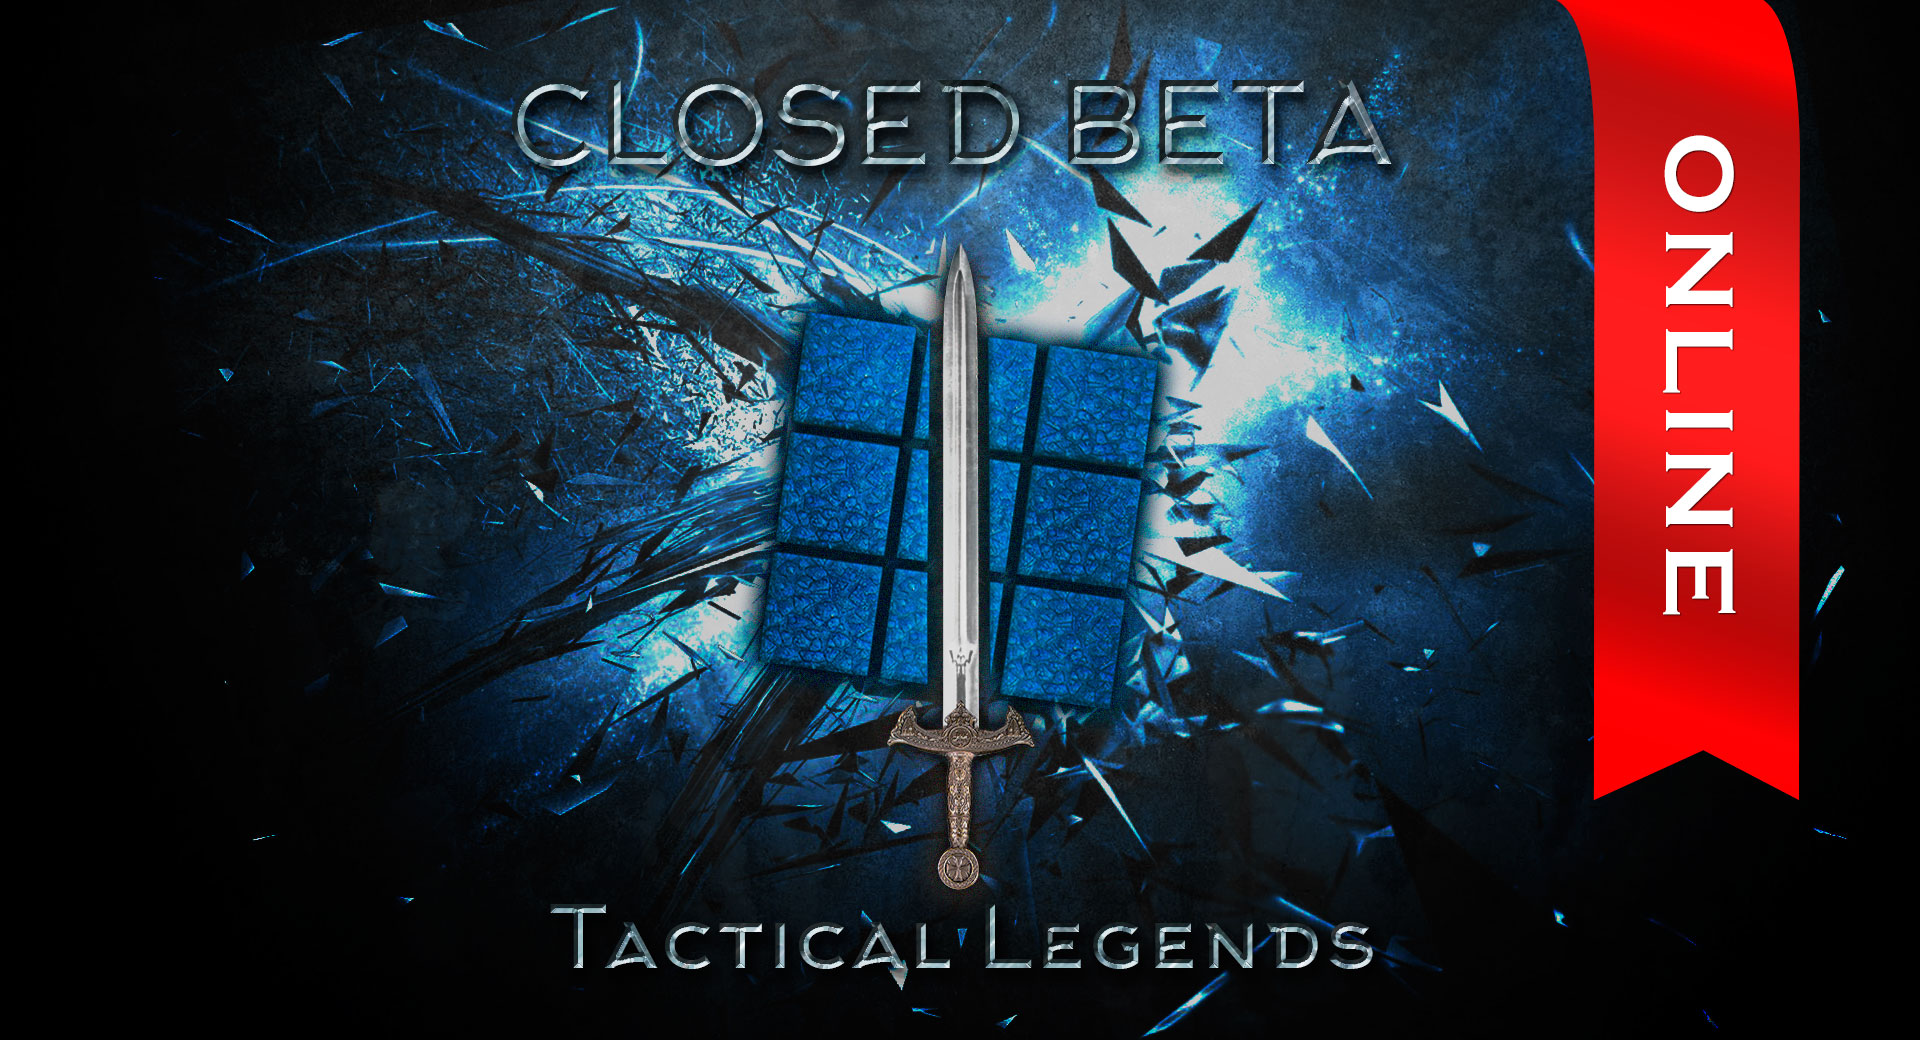 THE ANNOUNCEMENT OF CLOSED BETA